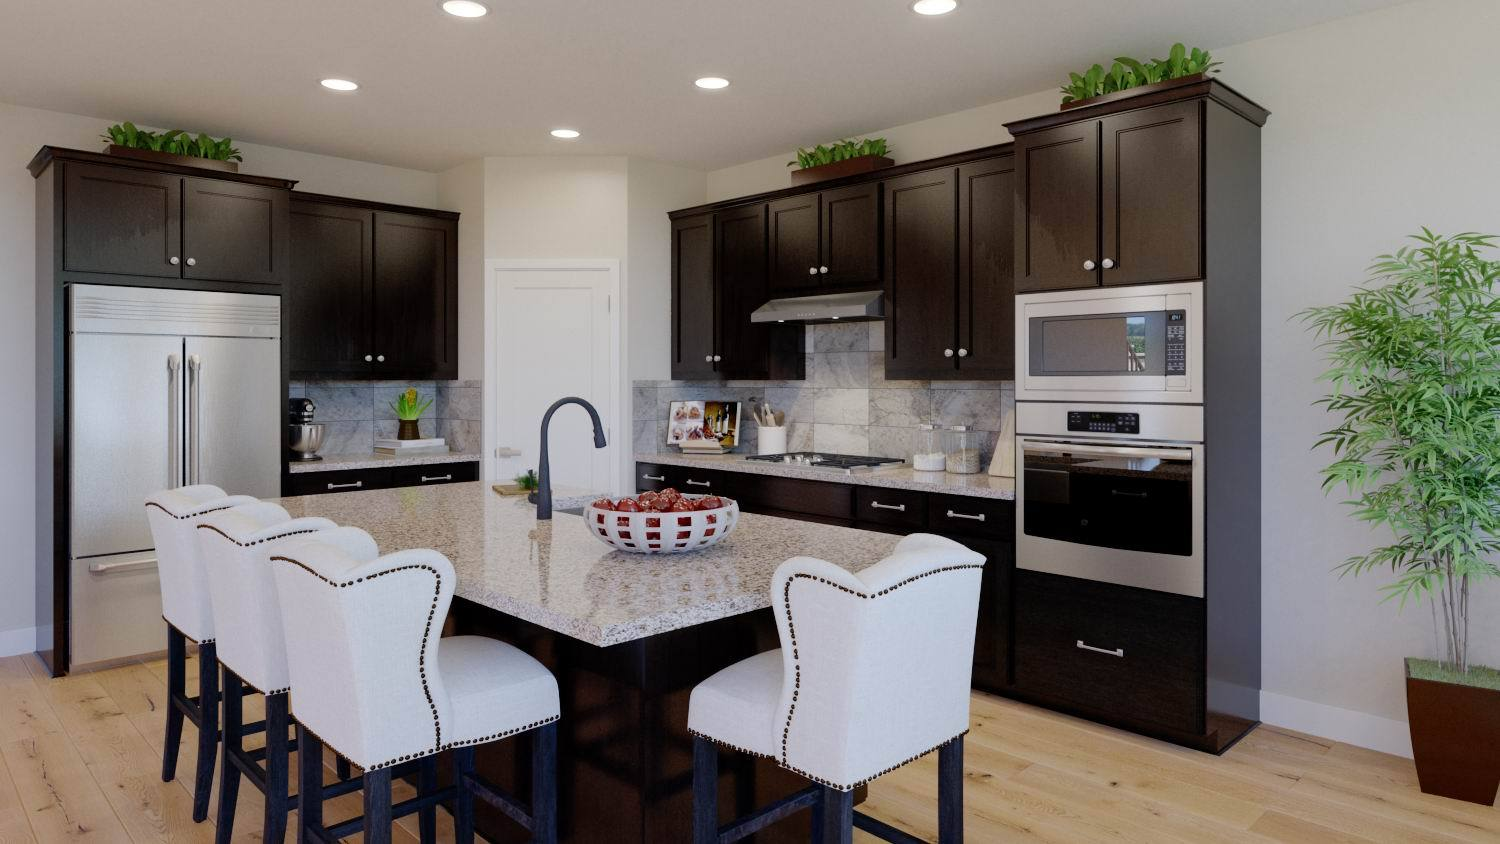 Kitchen-in-Residence 3-SFD-at-Madison Gate-in-Morgan Hill